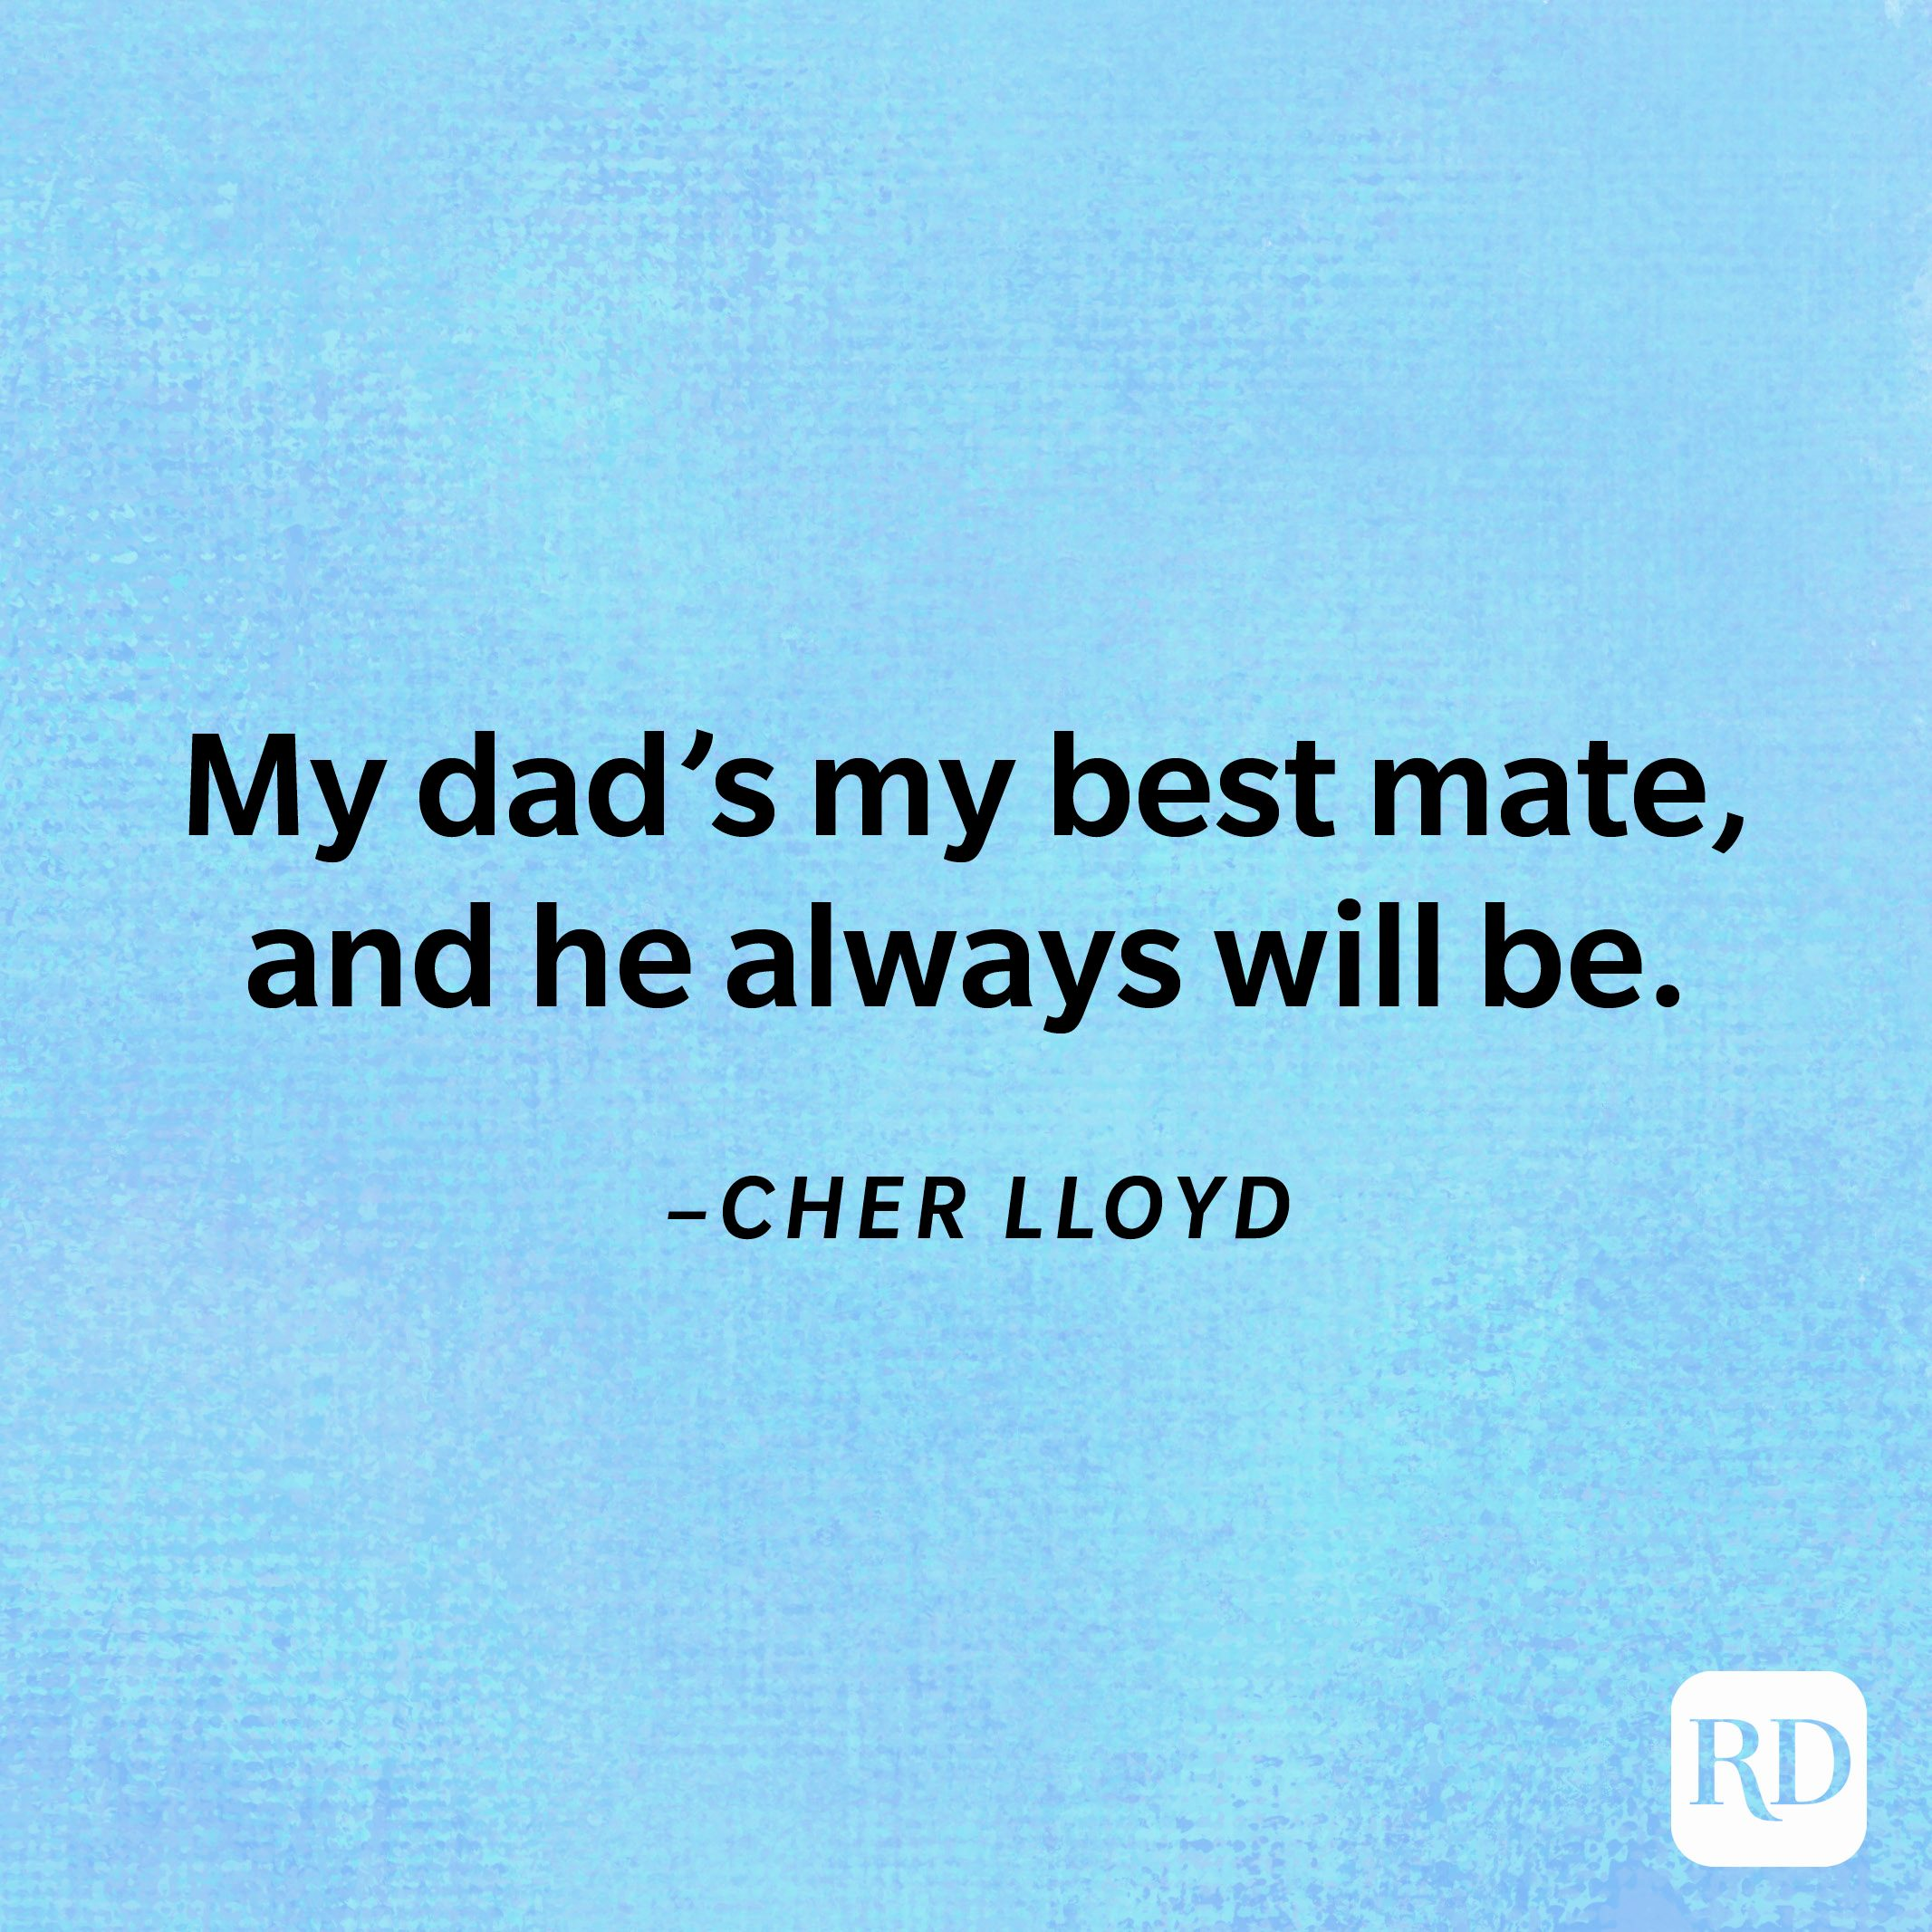 """""""My dad's my best mate, and he always will be.""""— Cher Lloyd"""